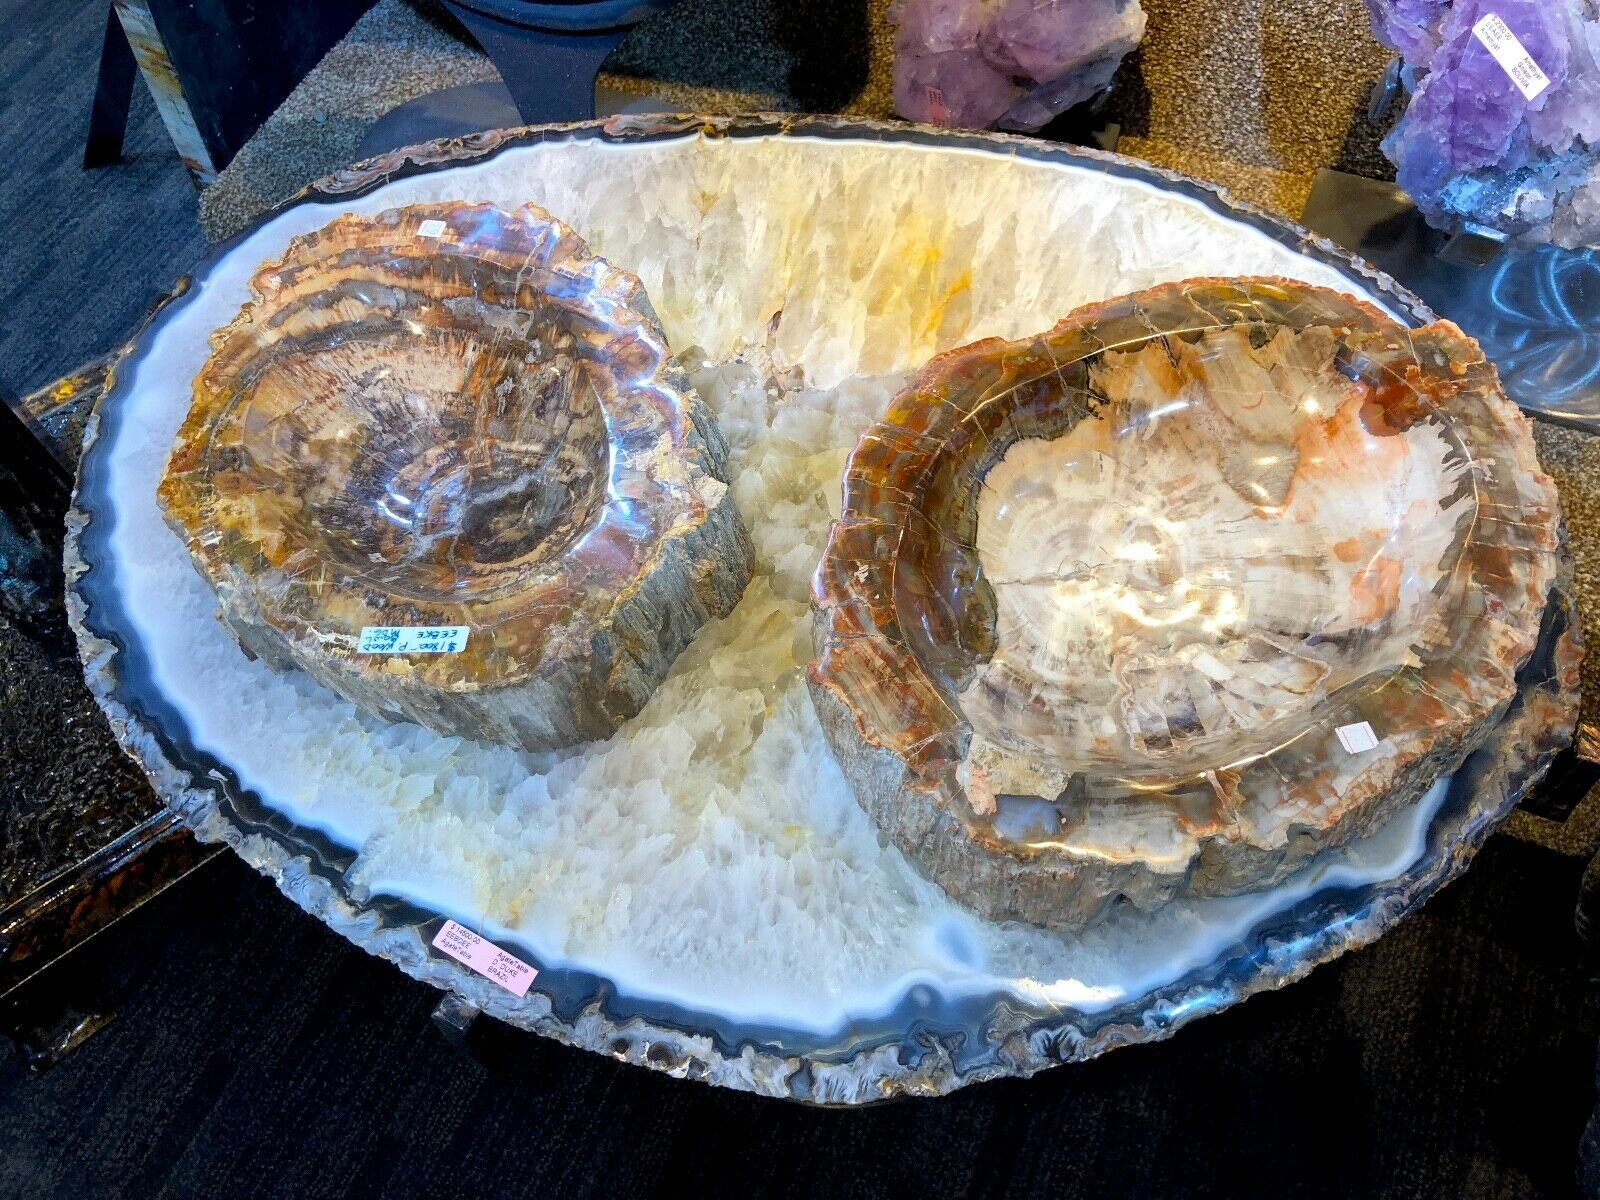 AGATE CRYSTAL TABLE HOME DECOR MINERAL DISPLAY PIRATE GOLD COINS EARTH TREASURES